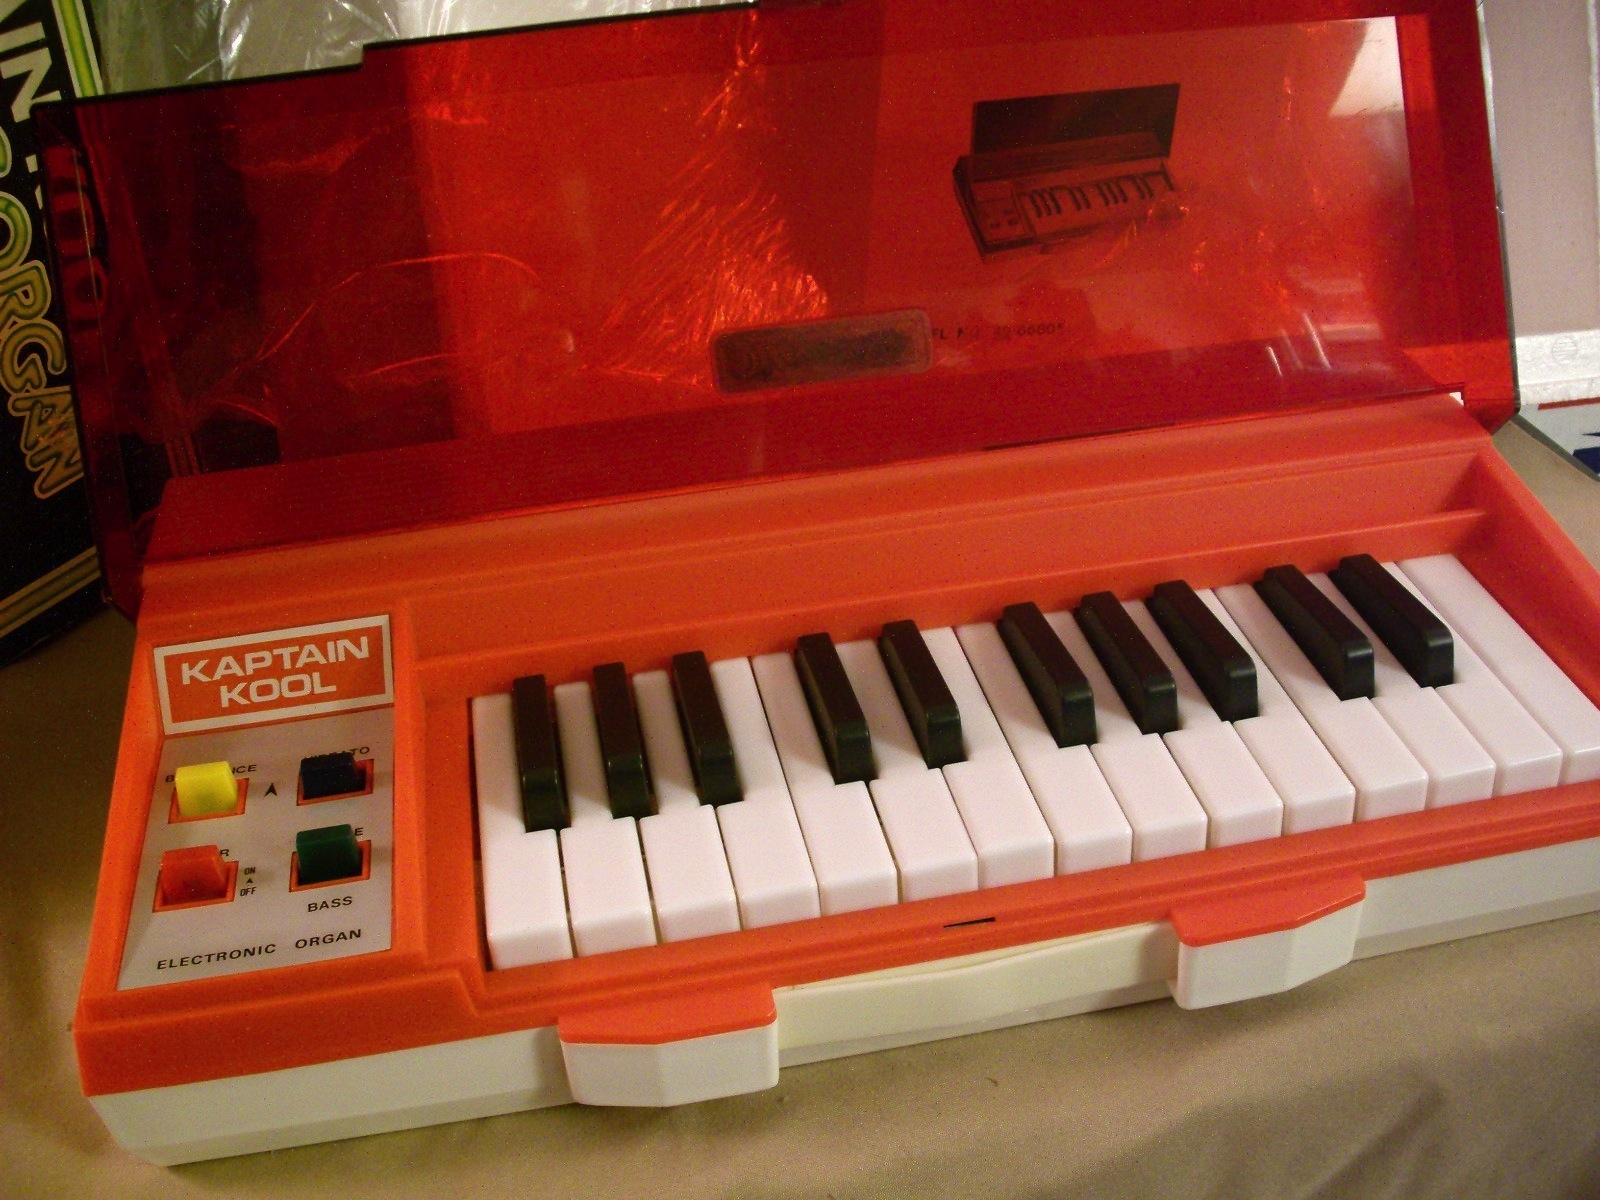 Kaptian Kool and the Kongs Electronic Organ